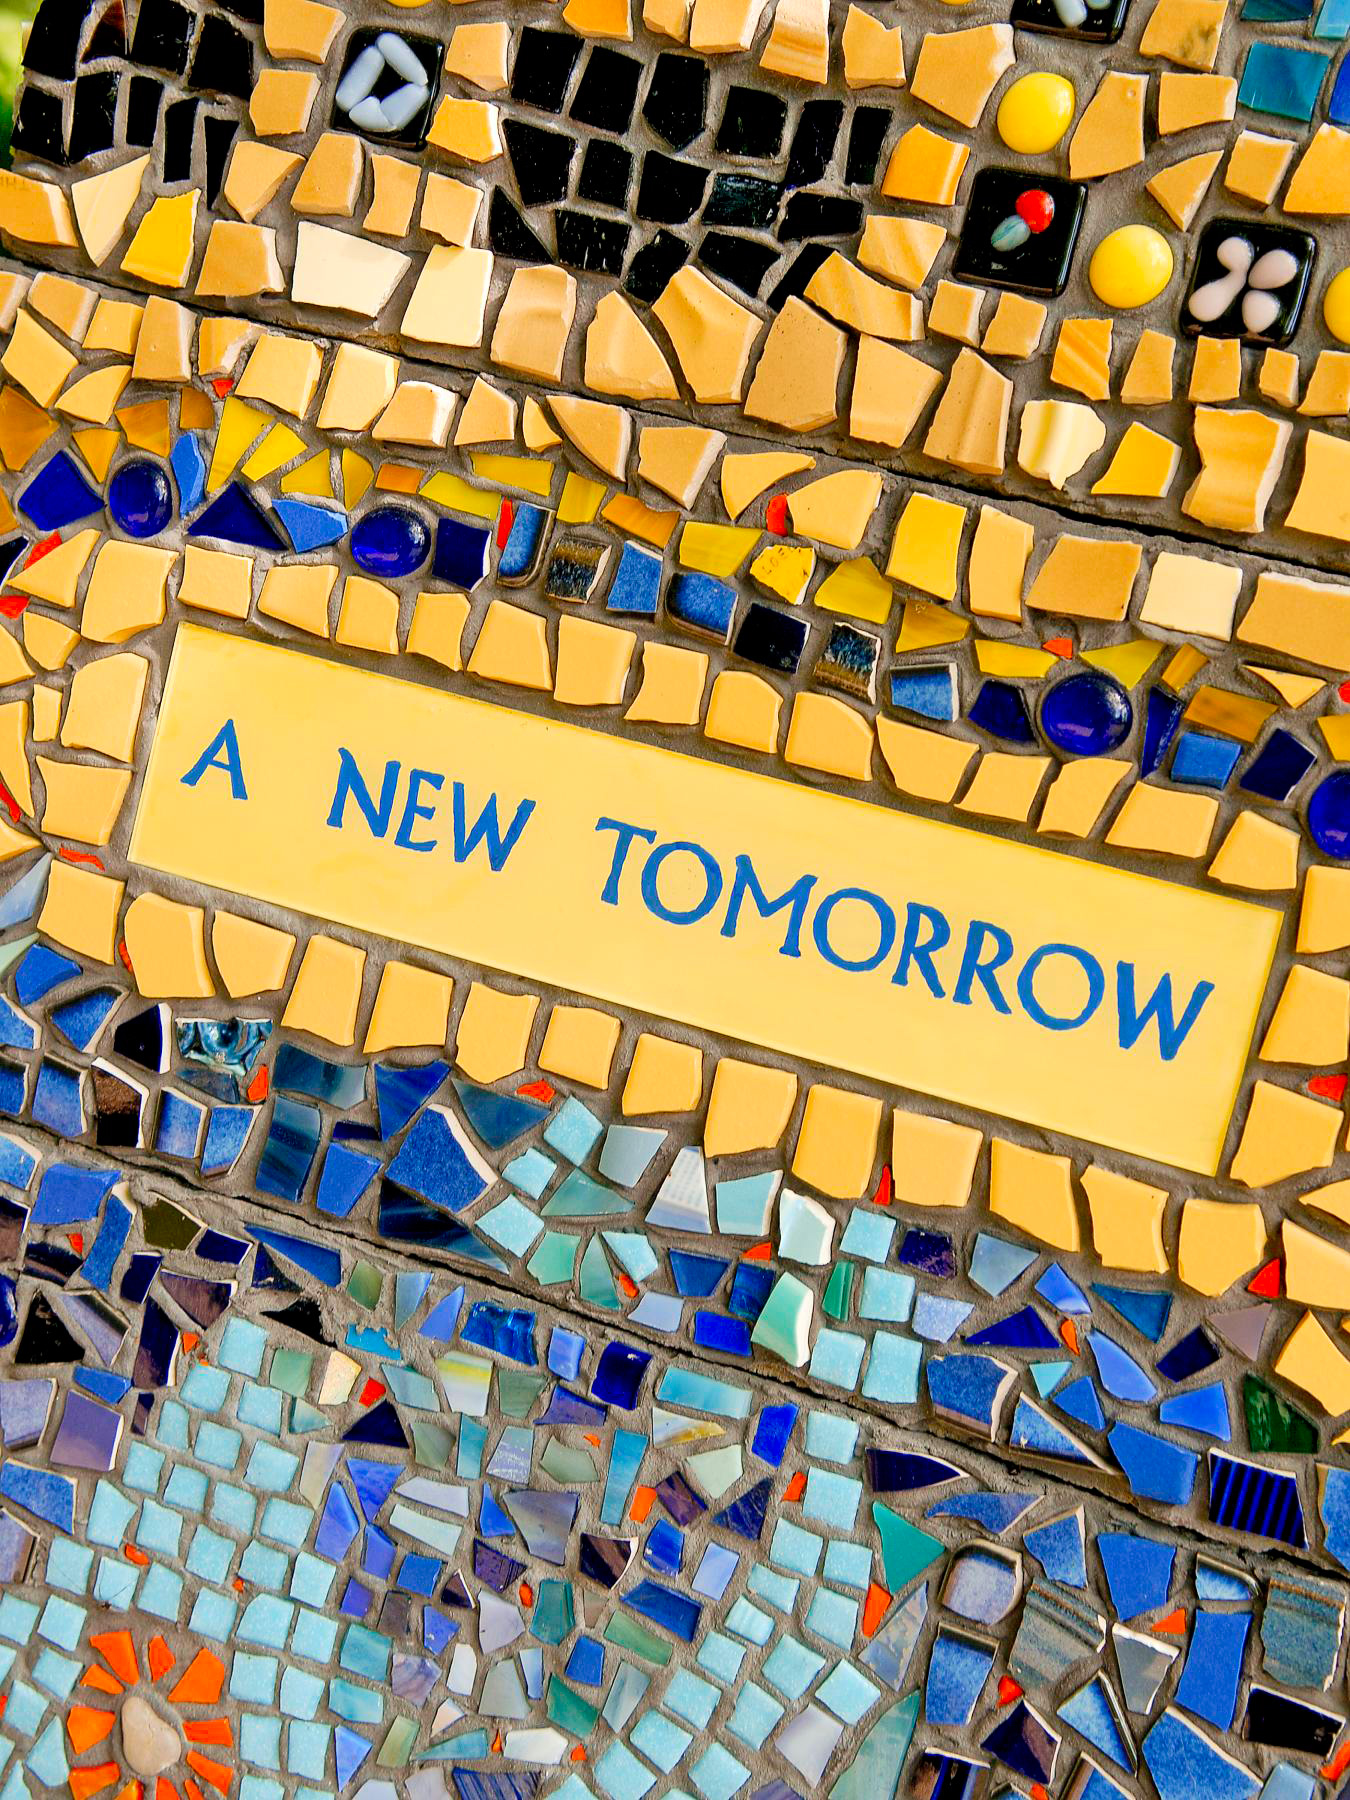 Mosaic messages